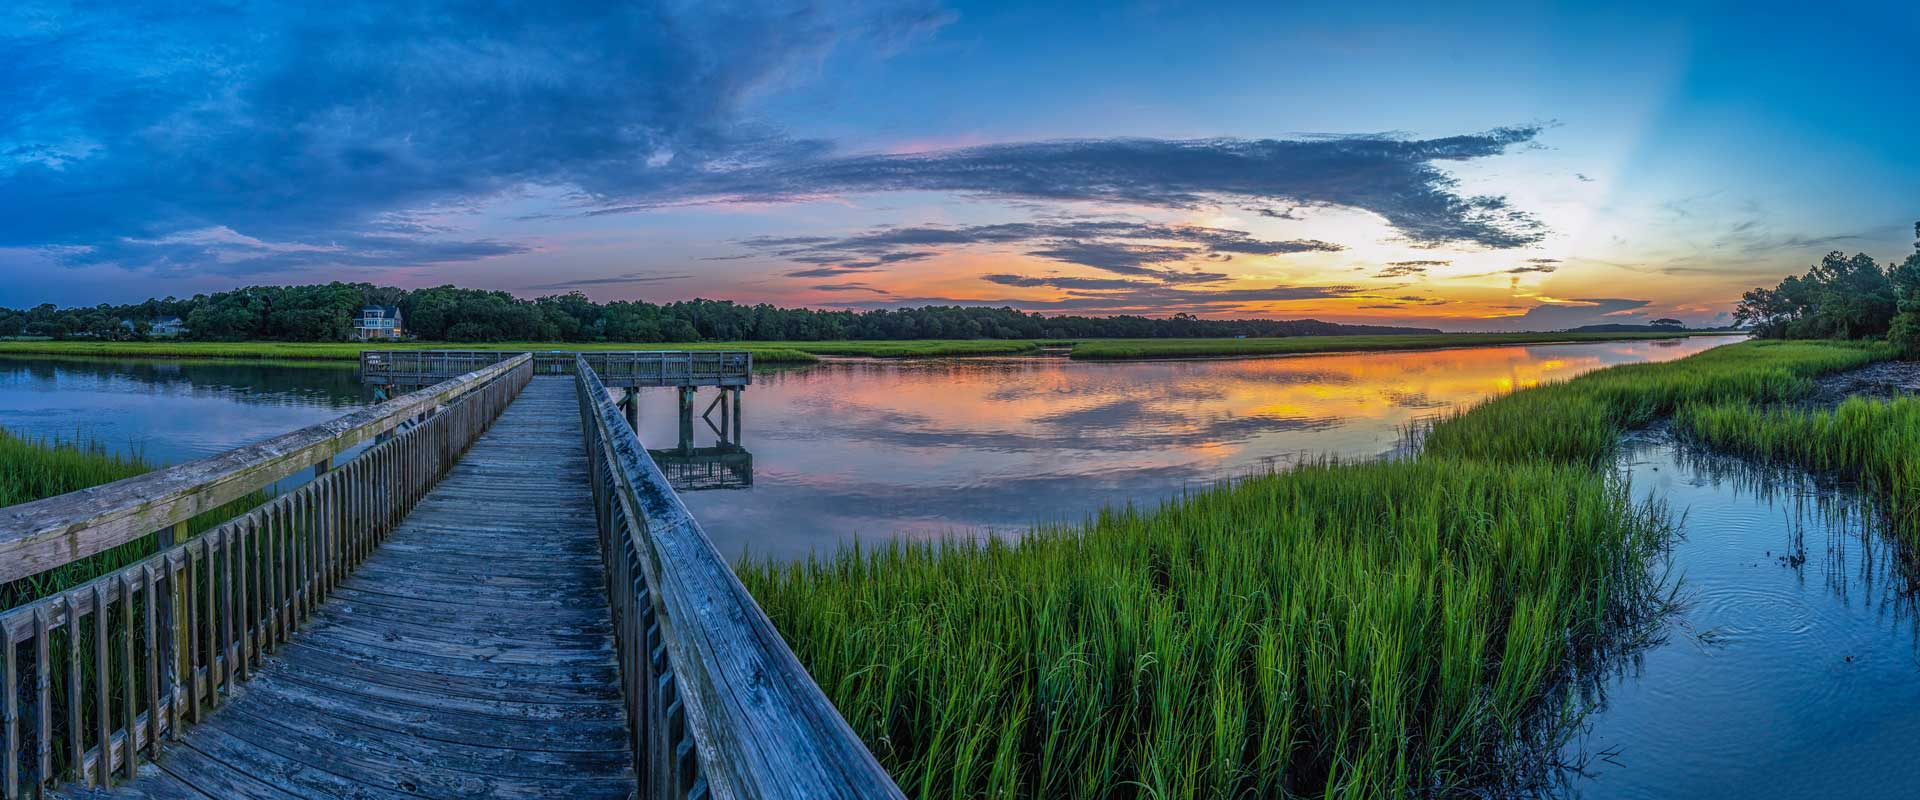 Awendaw, Sc at Sunset with a dock a sweetgrass